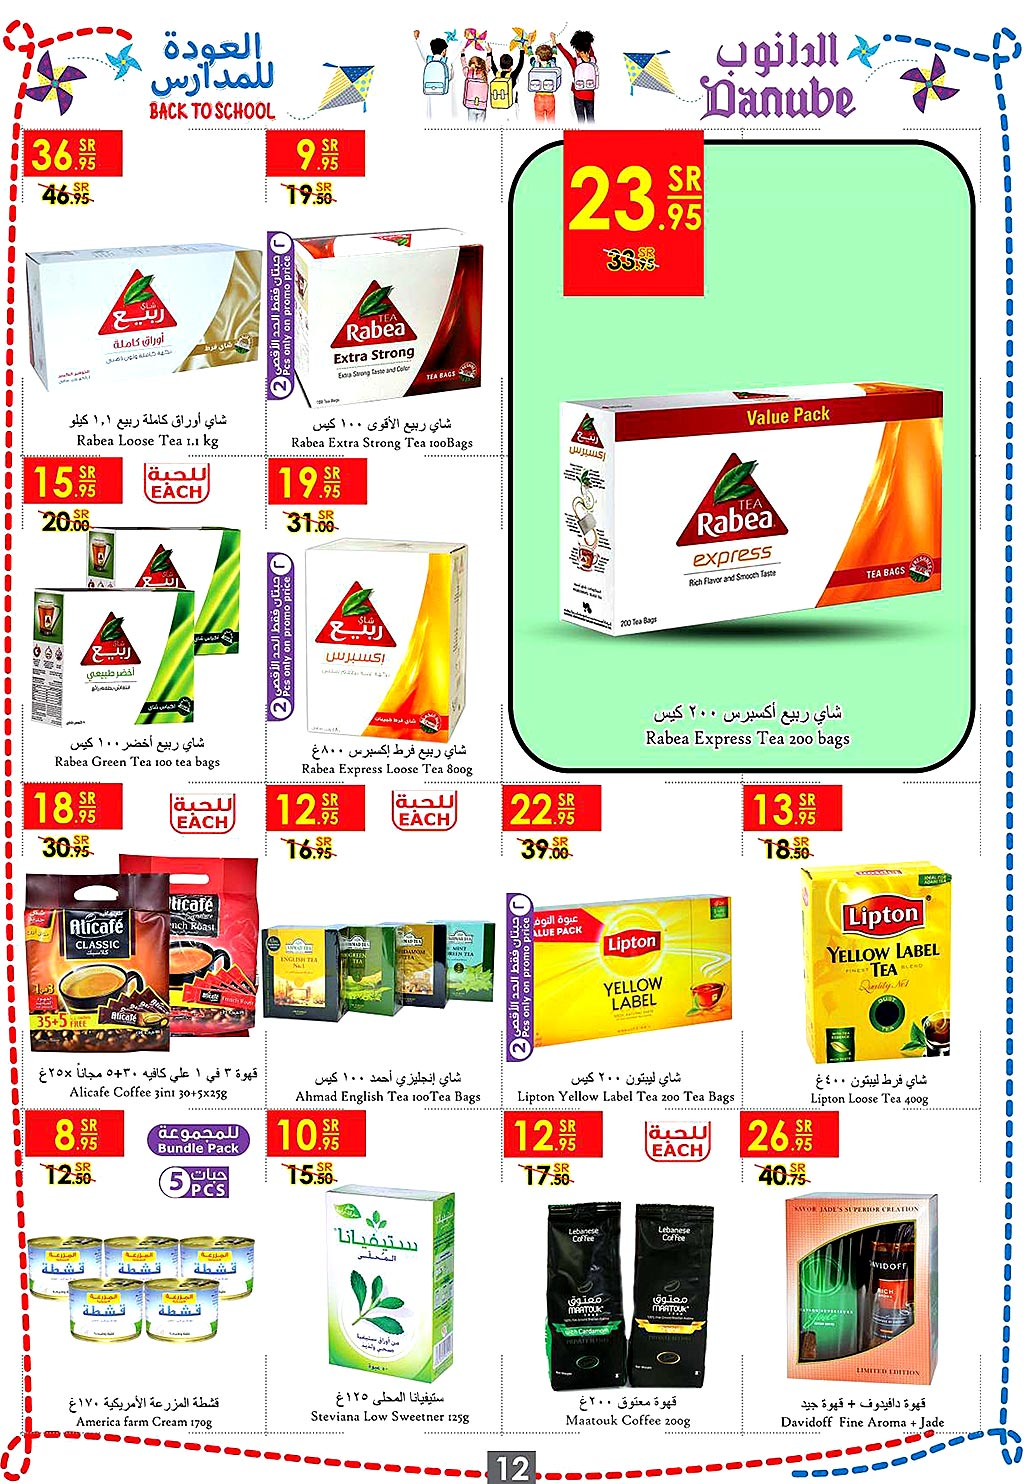 danube offers from 7aug to 21aug 2019 page number 11 عروض الدانوب من 7 أغسطس حتى 21 أغسطس 2019 صفحة رقم 11